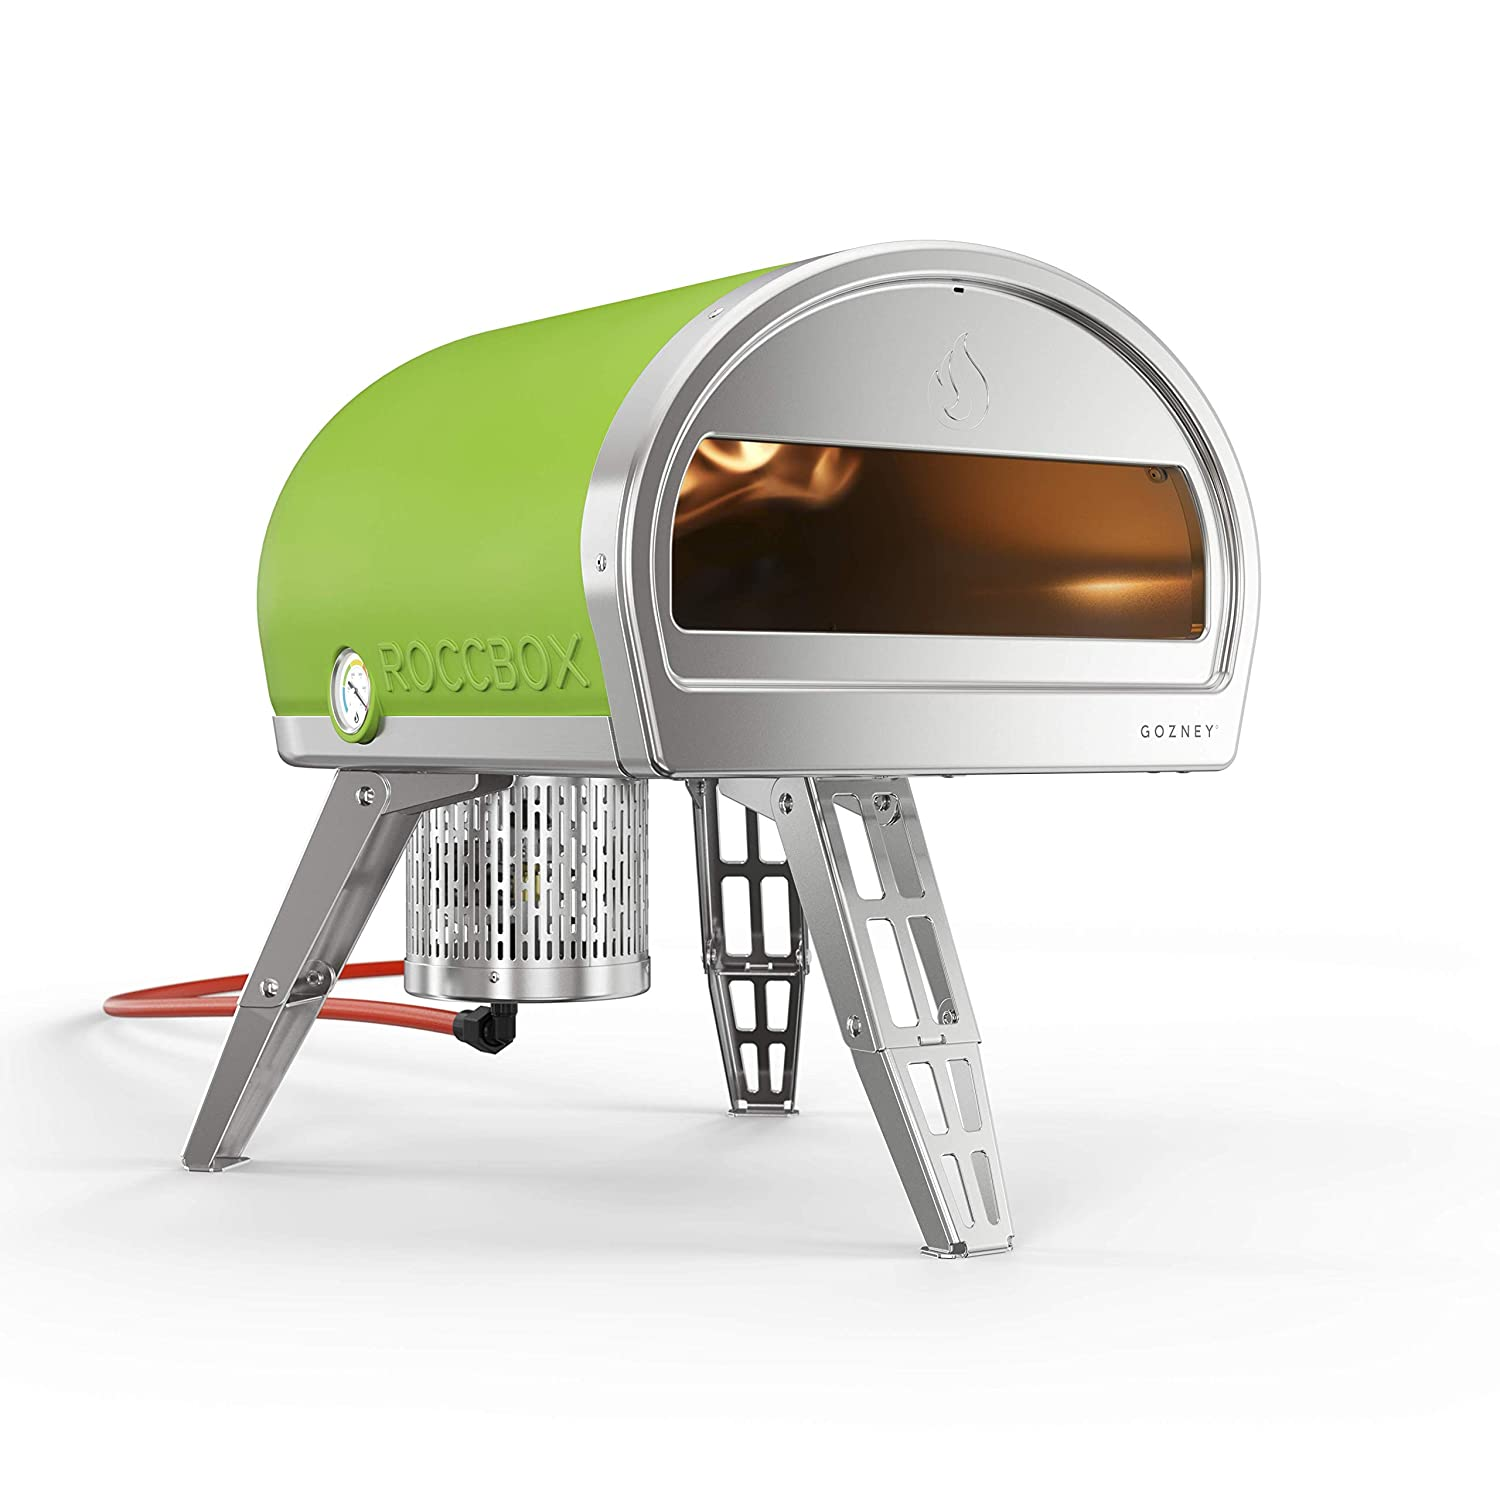 ROCCBOX Portable Outdoor Pizza Oven - Gas or Wood Fired, Dual-Fuel, Fire & Stone Outdoor Pizza Oven - Green